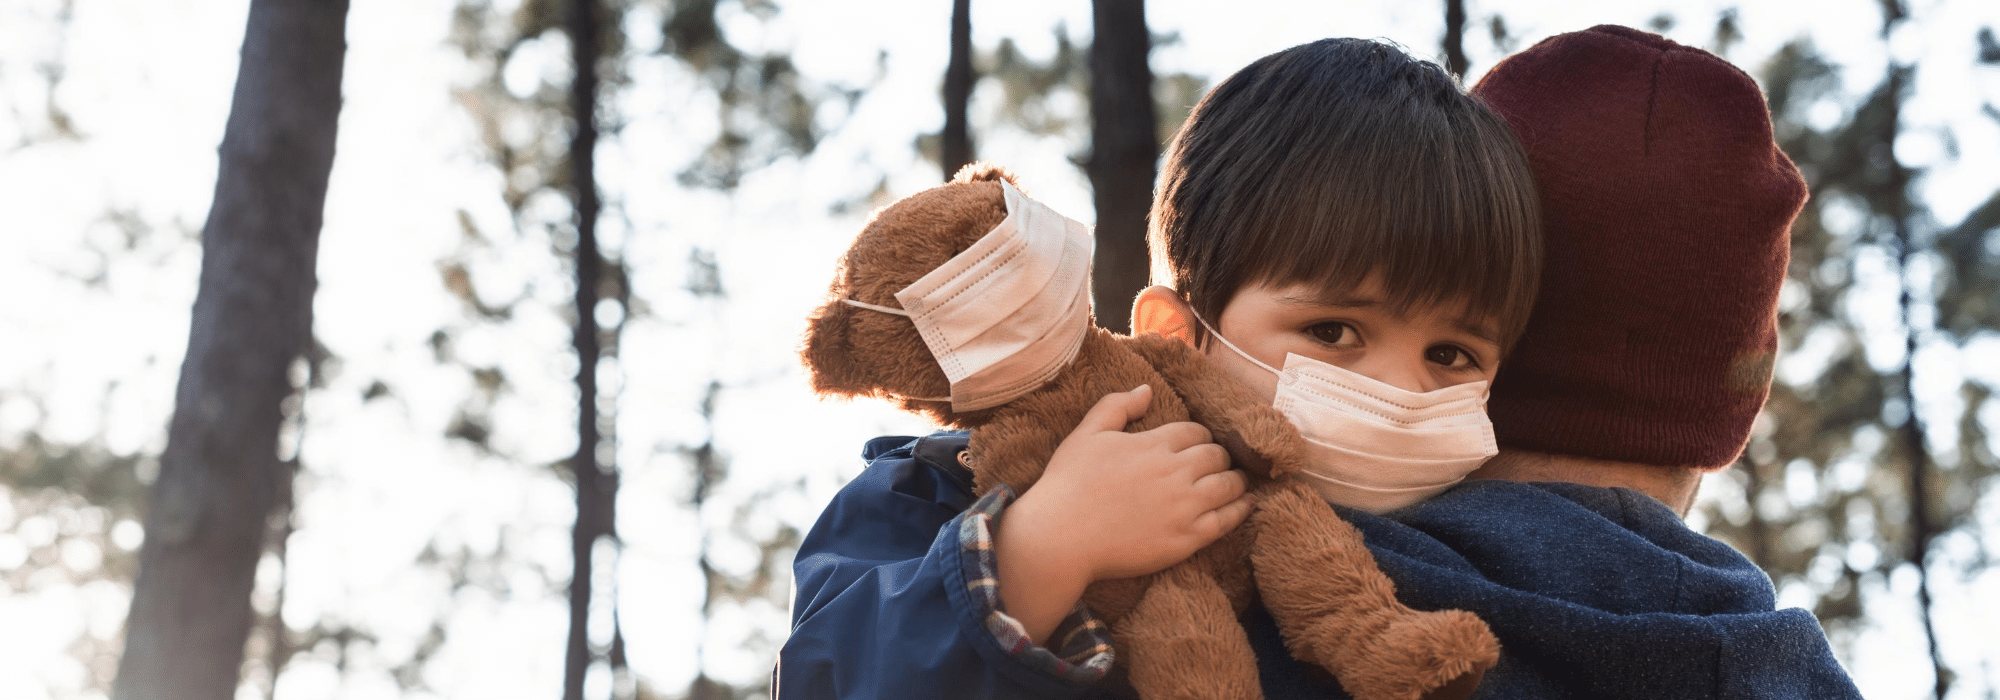 Child and his stuffed bear, both wearing facial coverings.